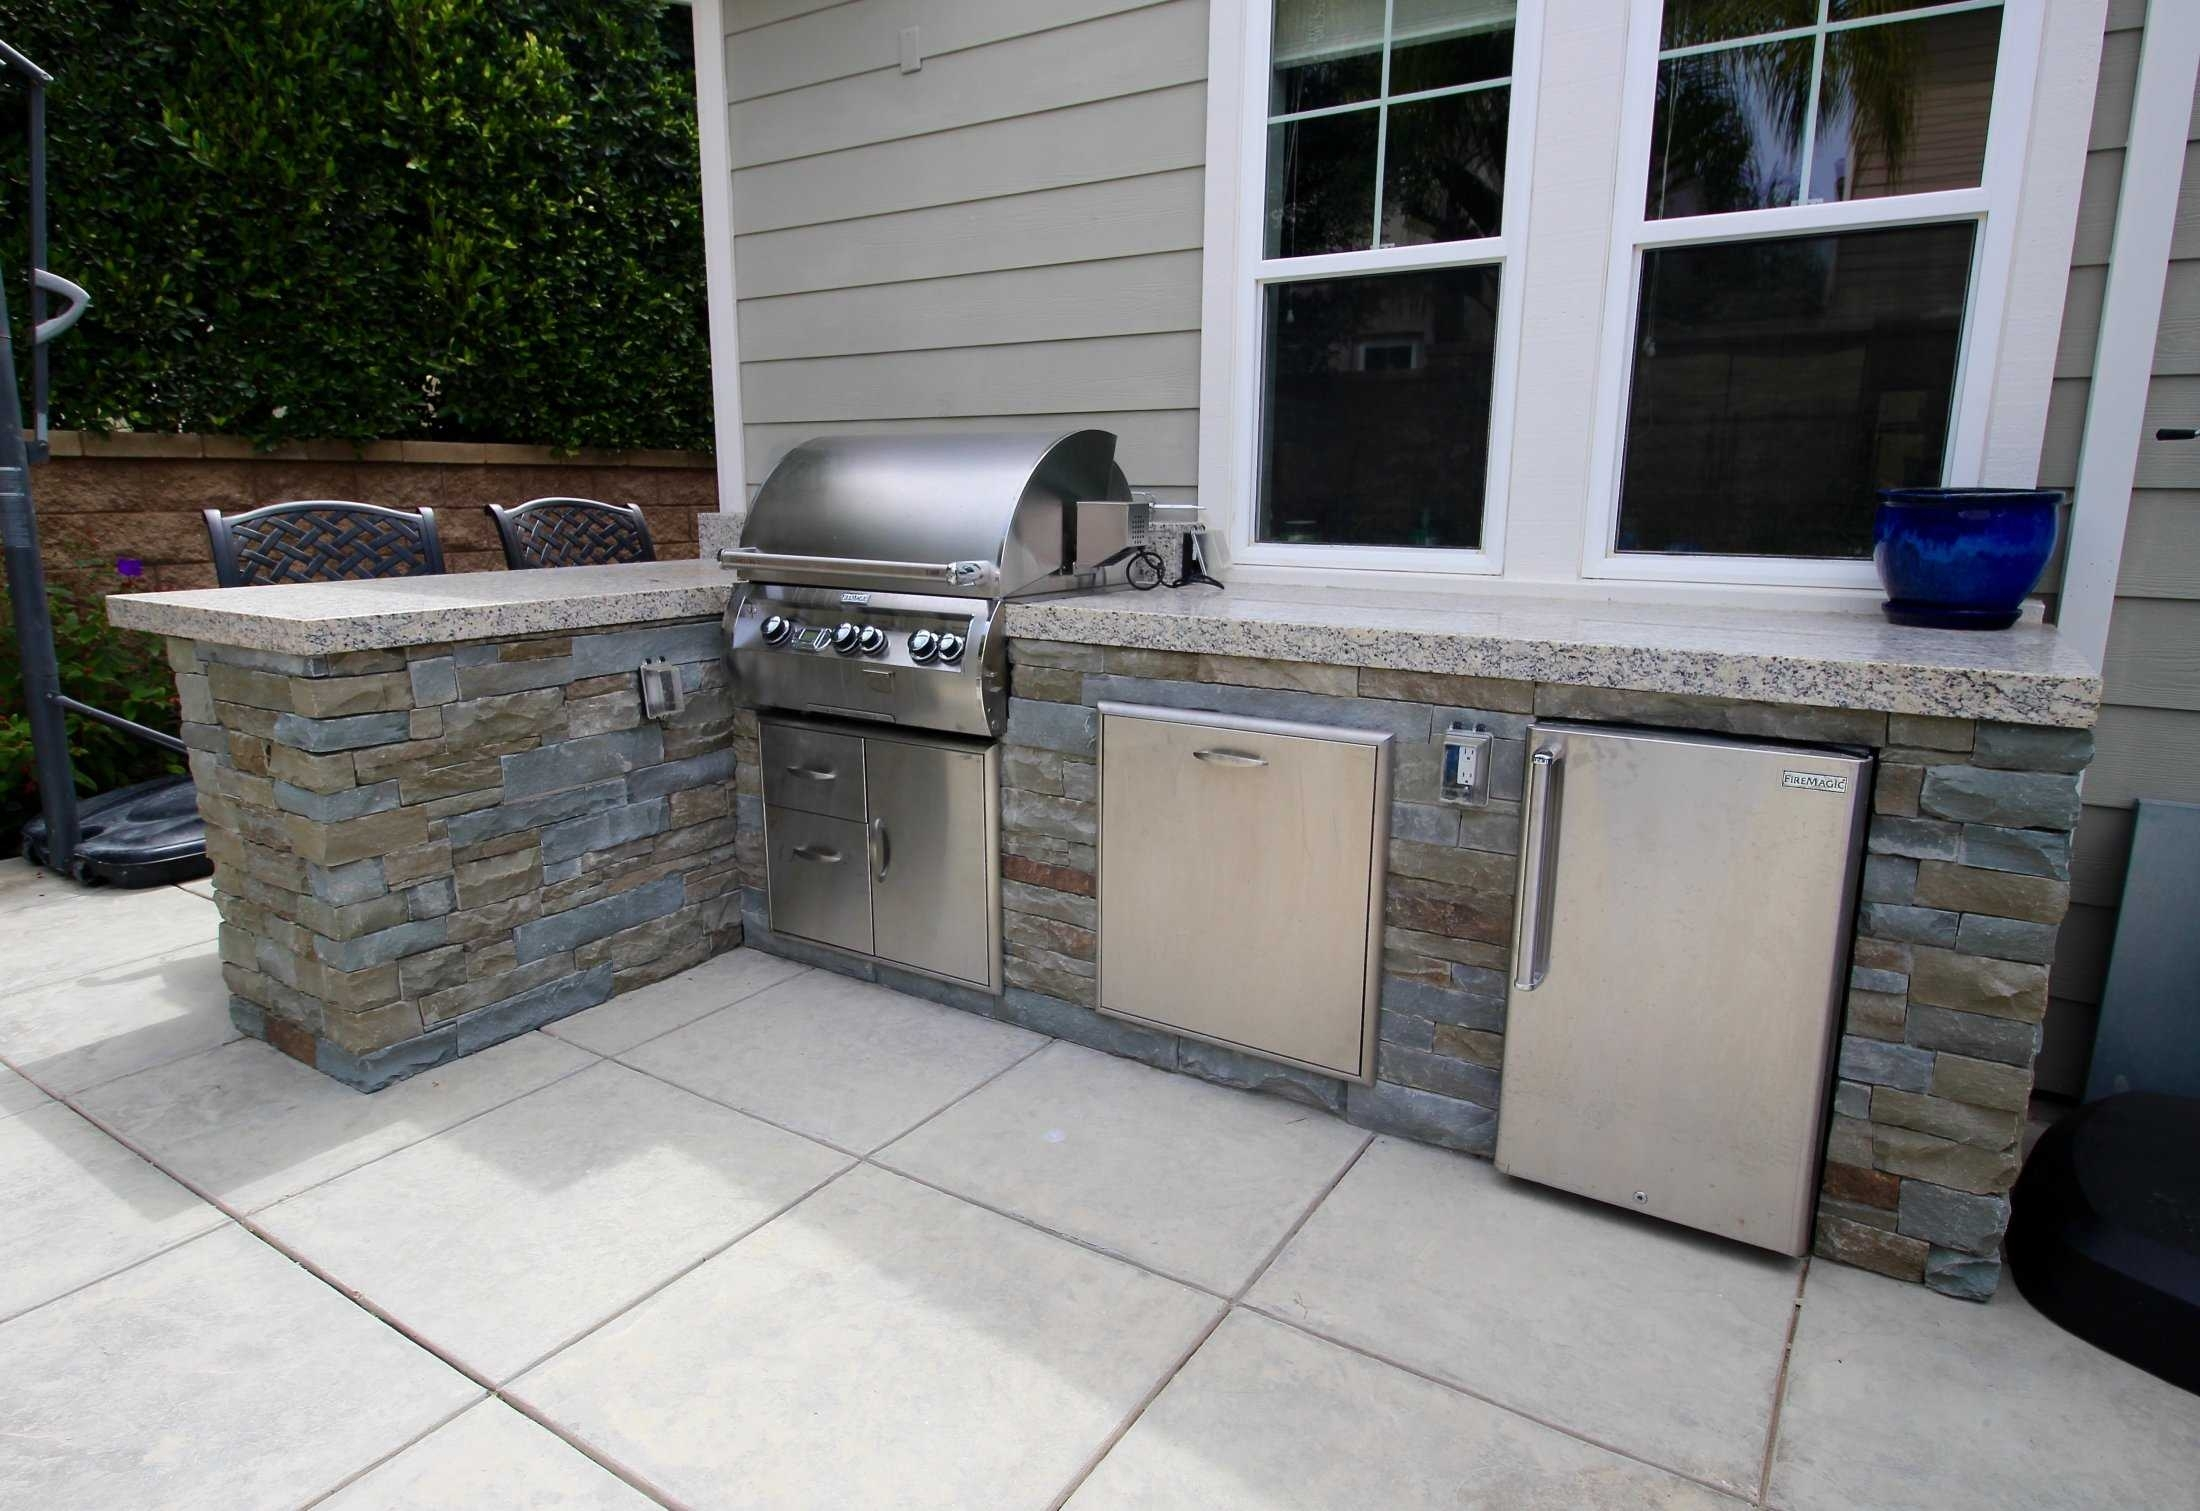 Granite Countertops For Brick Outdoor Kitchen — Randolph ...